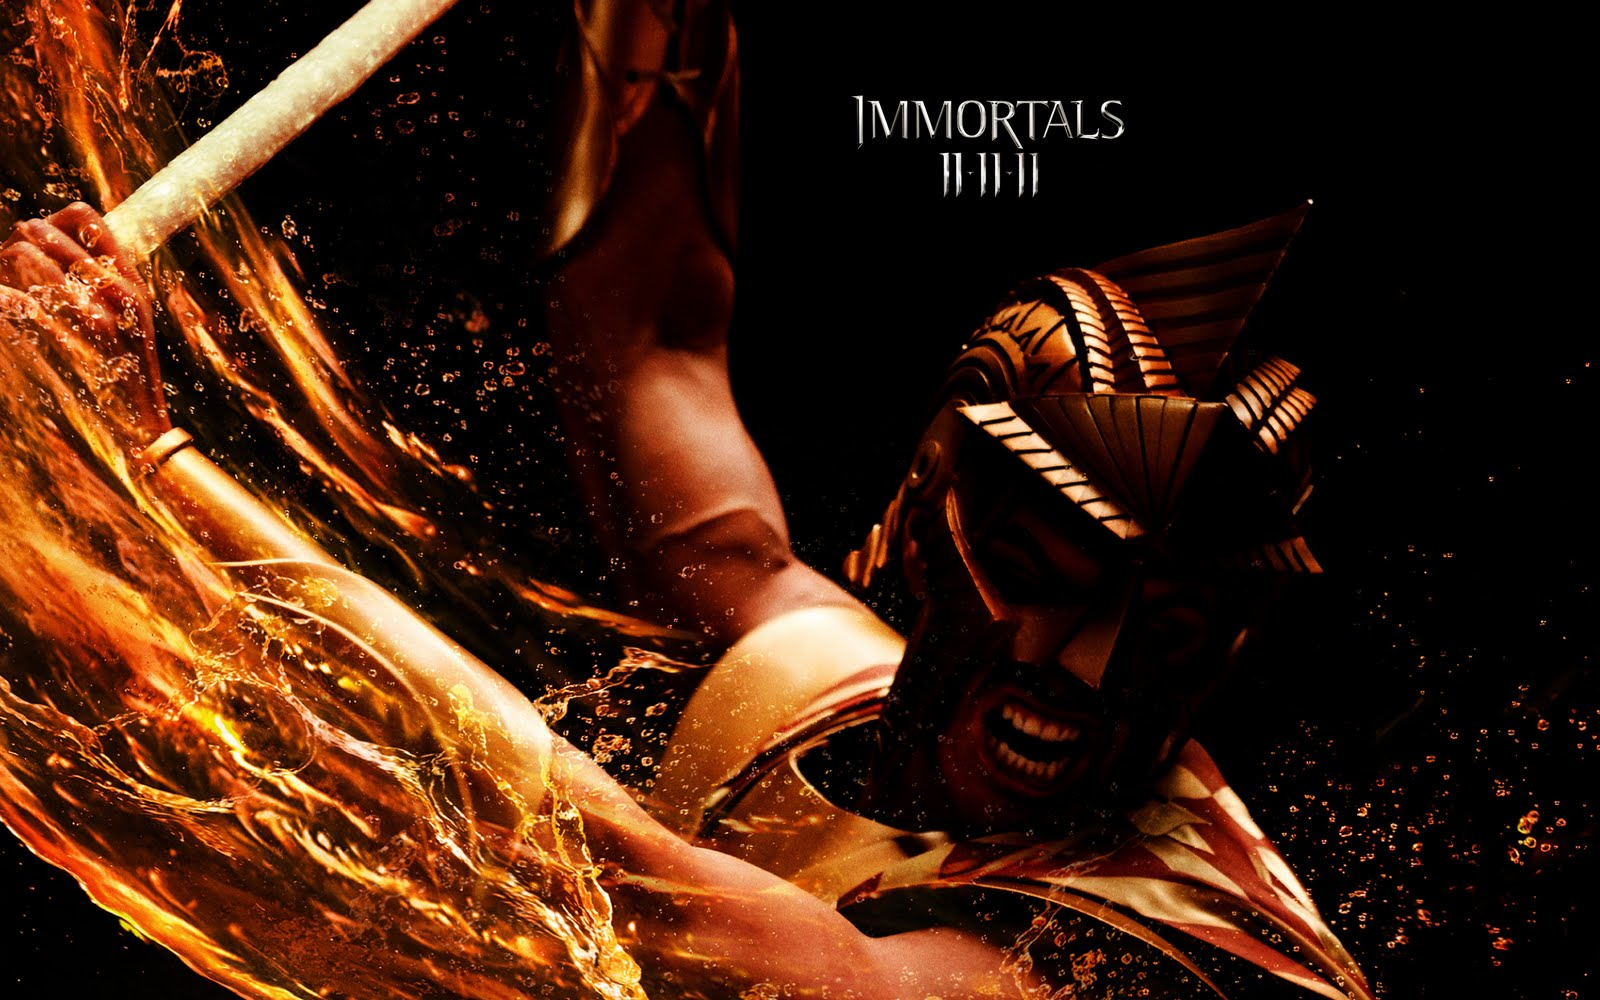 Immortals Movie Poster Immortals hi Resolution Movie